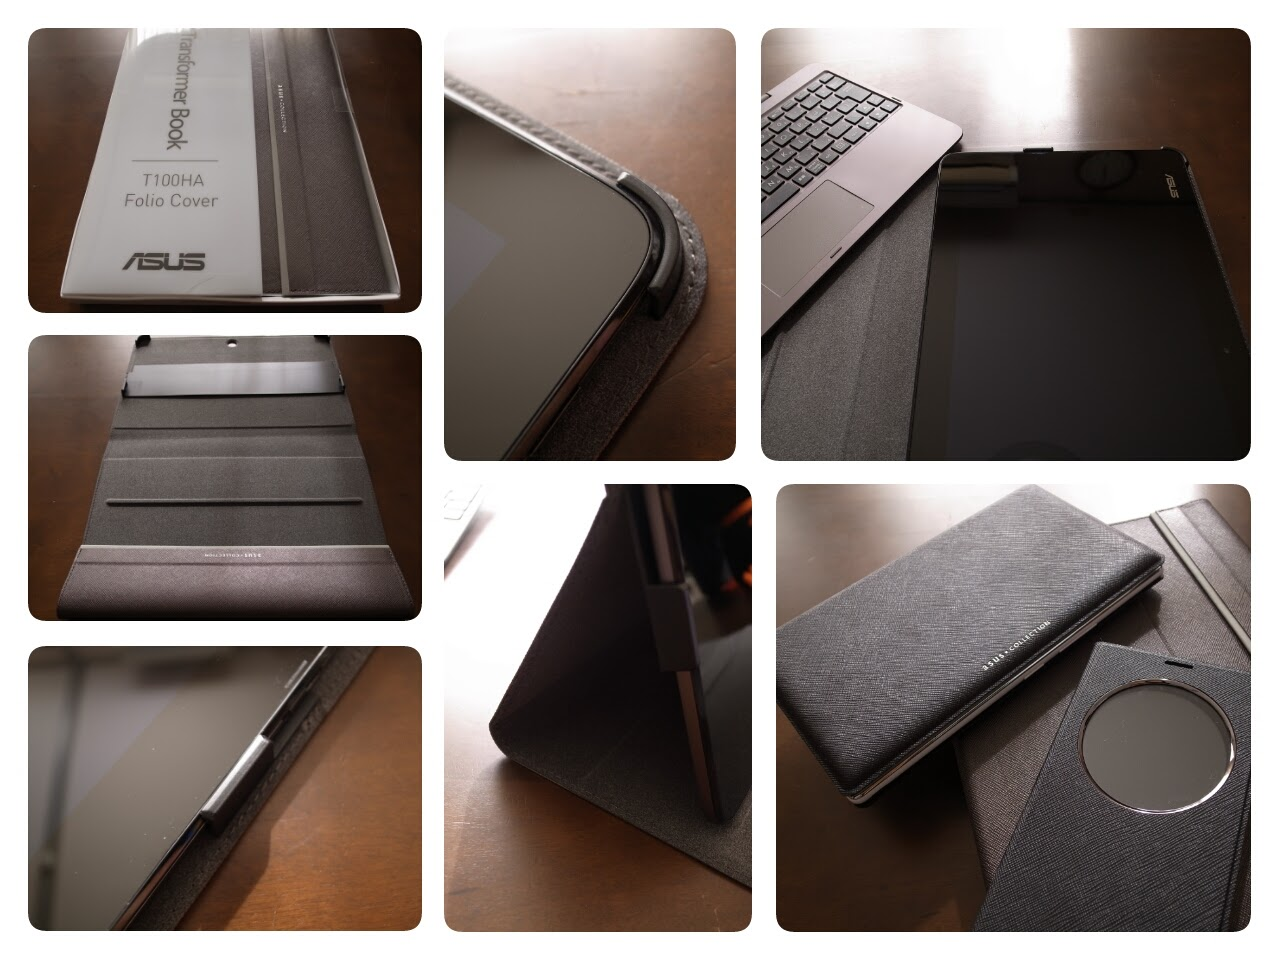 1120-201512_ASUS T100HA Folio Cover